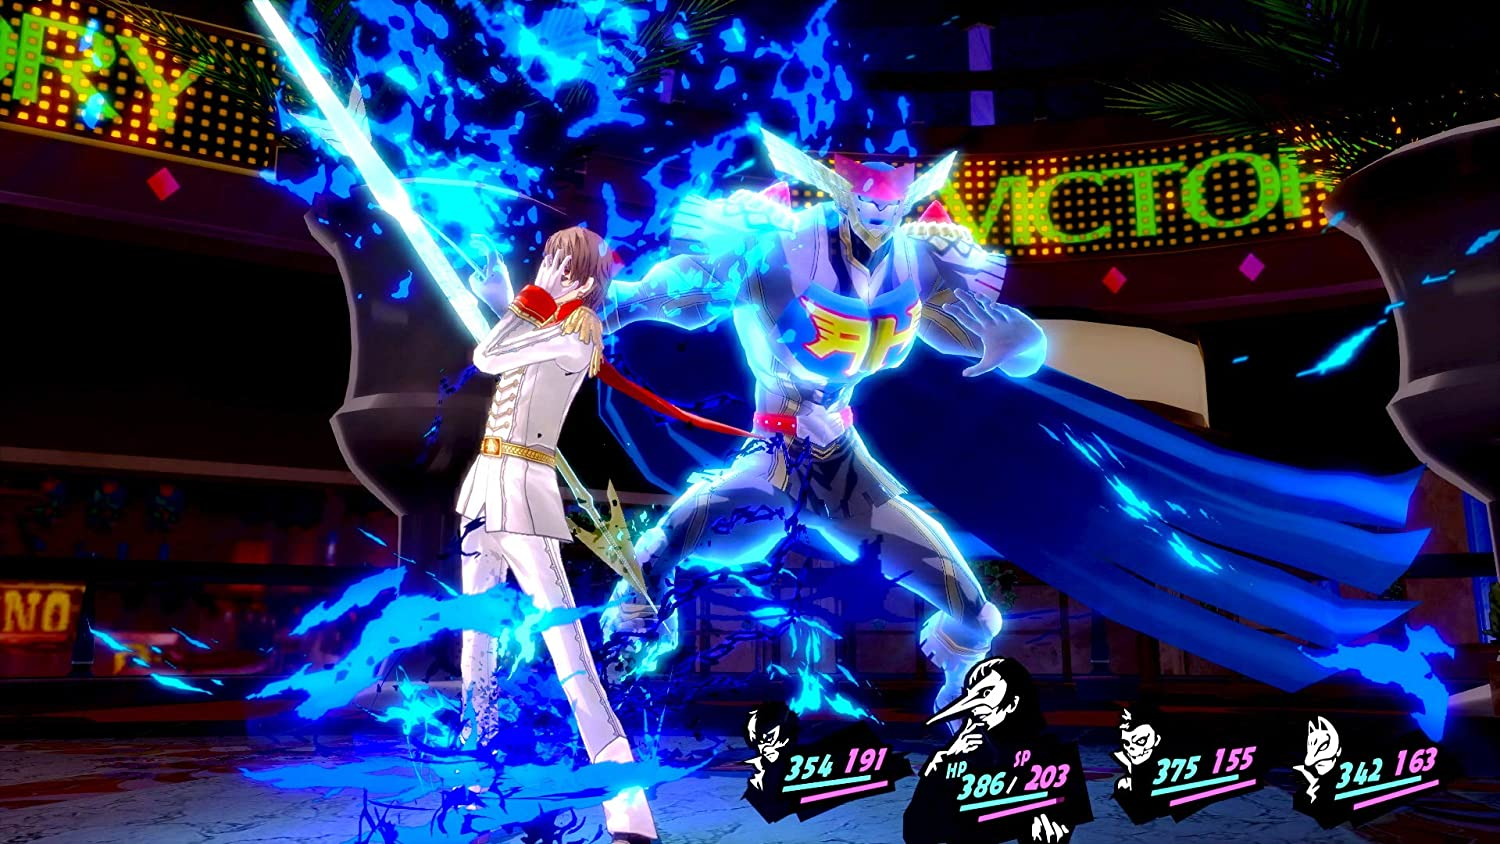 <em>Persona 5 Royal</em> is an enhanced version of the acclaimed and super-stylish JRPG with new characters and additional content.